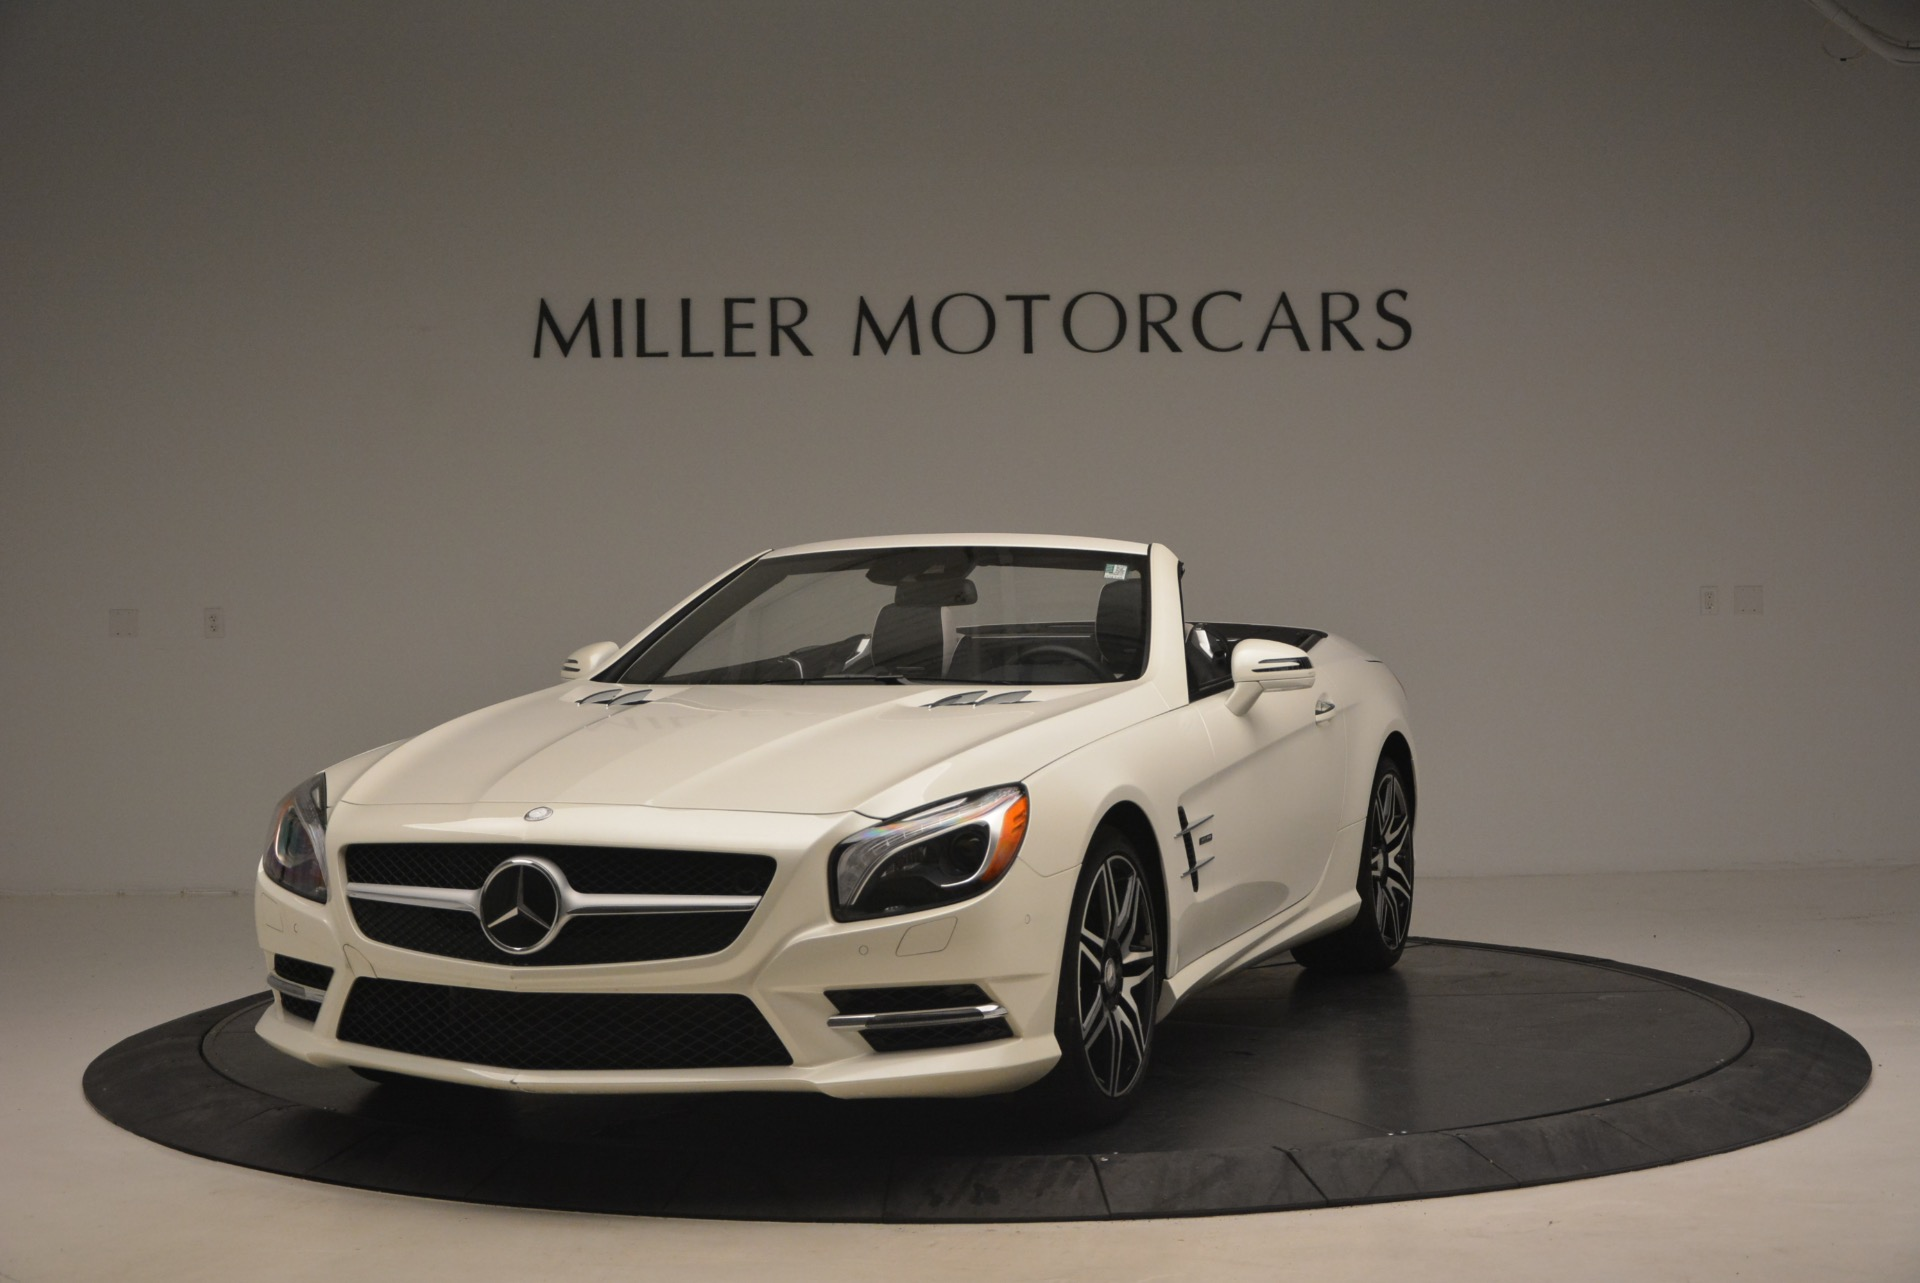 Used 2015 Mercedes Benz SL-Class SL 550 for sale Sold at Rolls-Royce Motor Cars Greenwich in Greenwich CT 06830 1